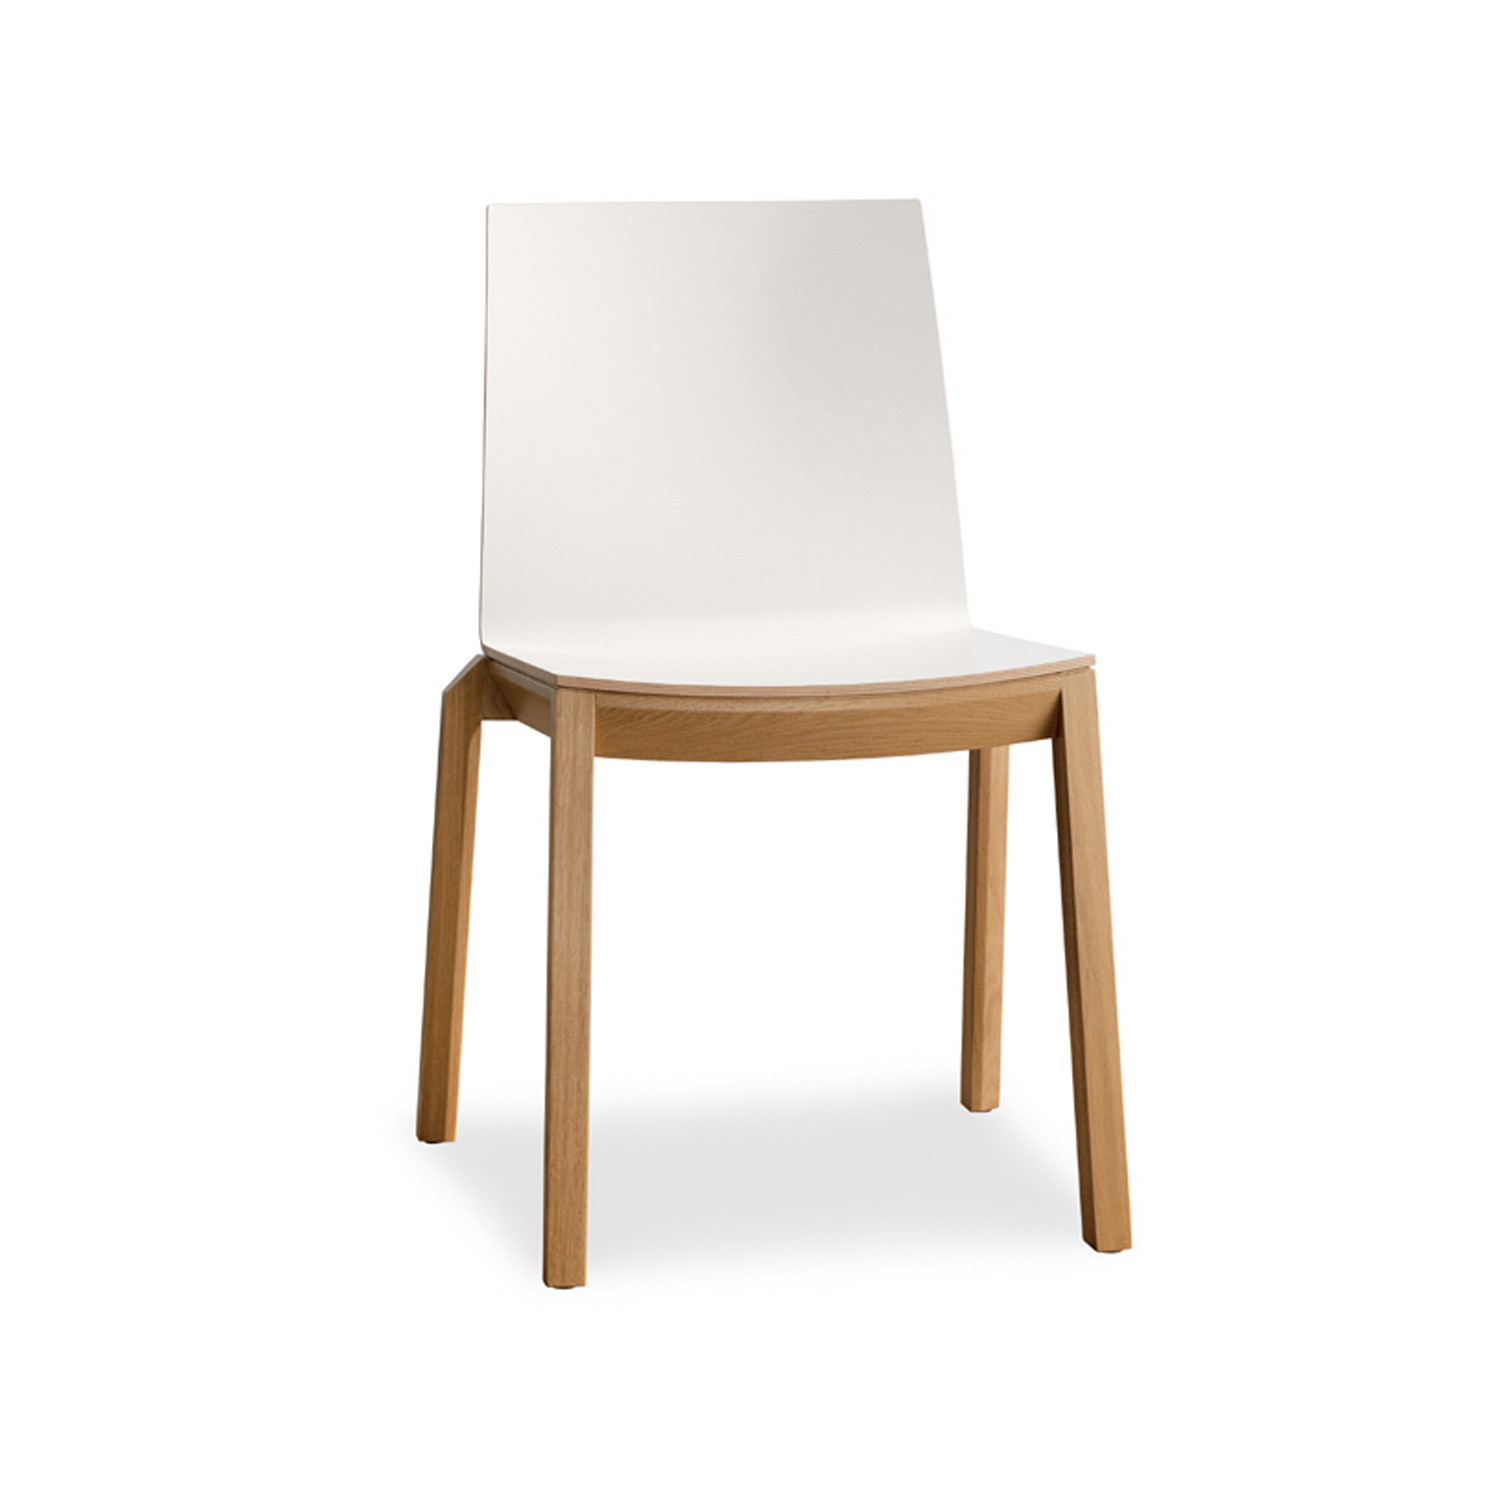 Arta Stacking Chairs